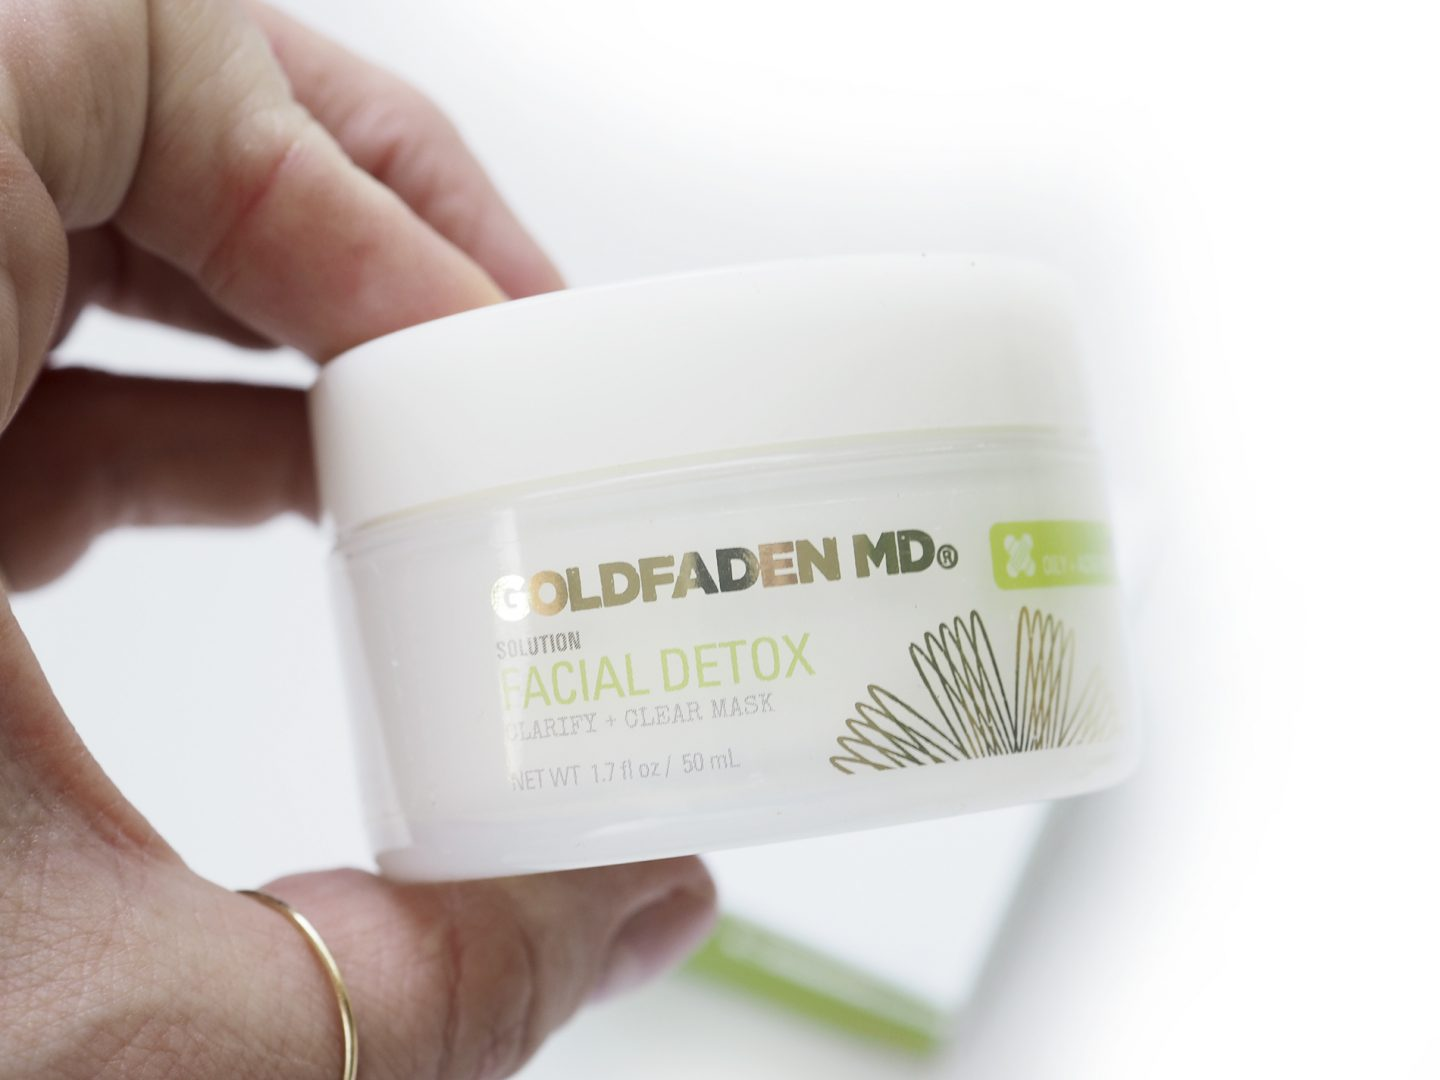 Goldfaden Facial Detox